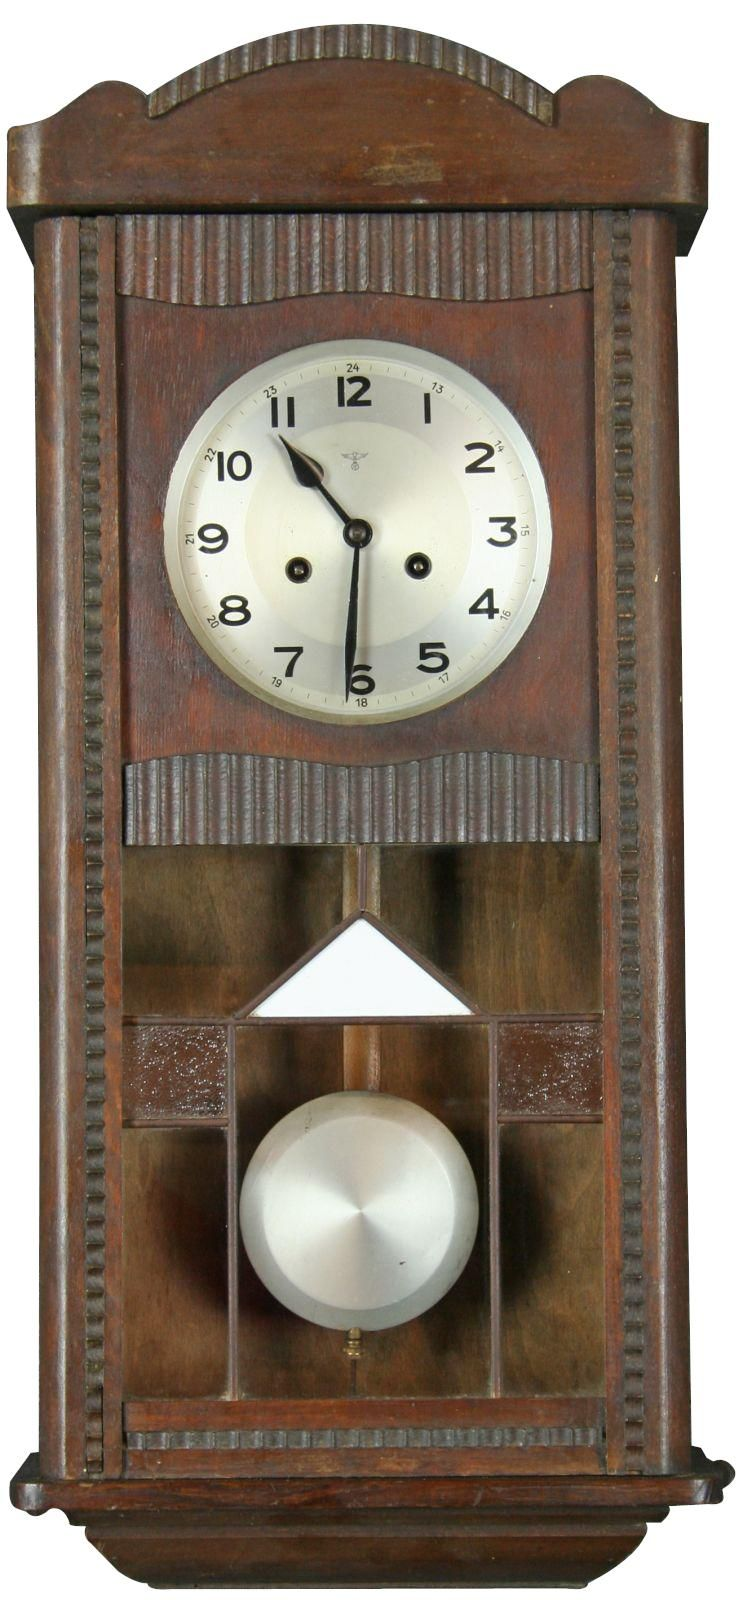 Vintage German Art Deco Wall Clock Regulator 1930 With Stained